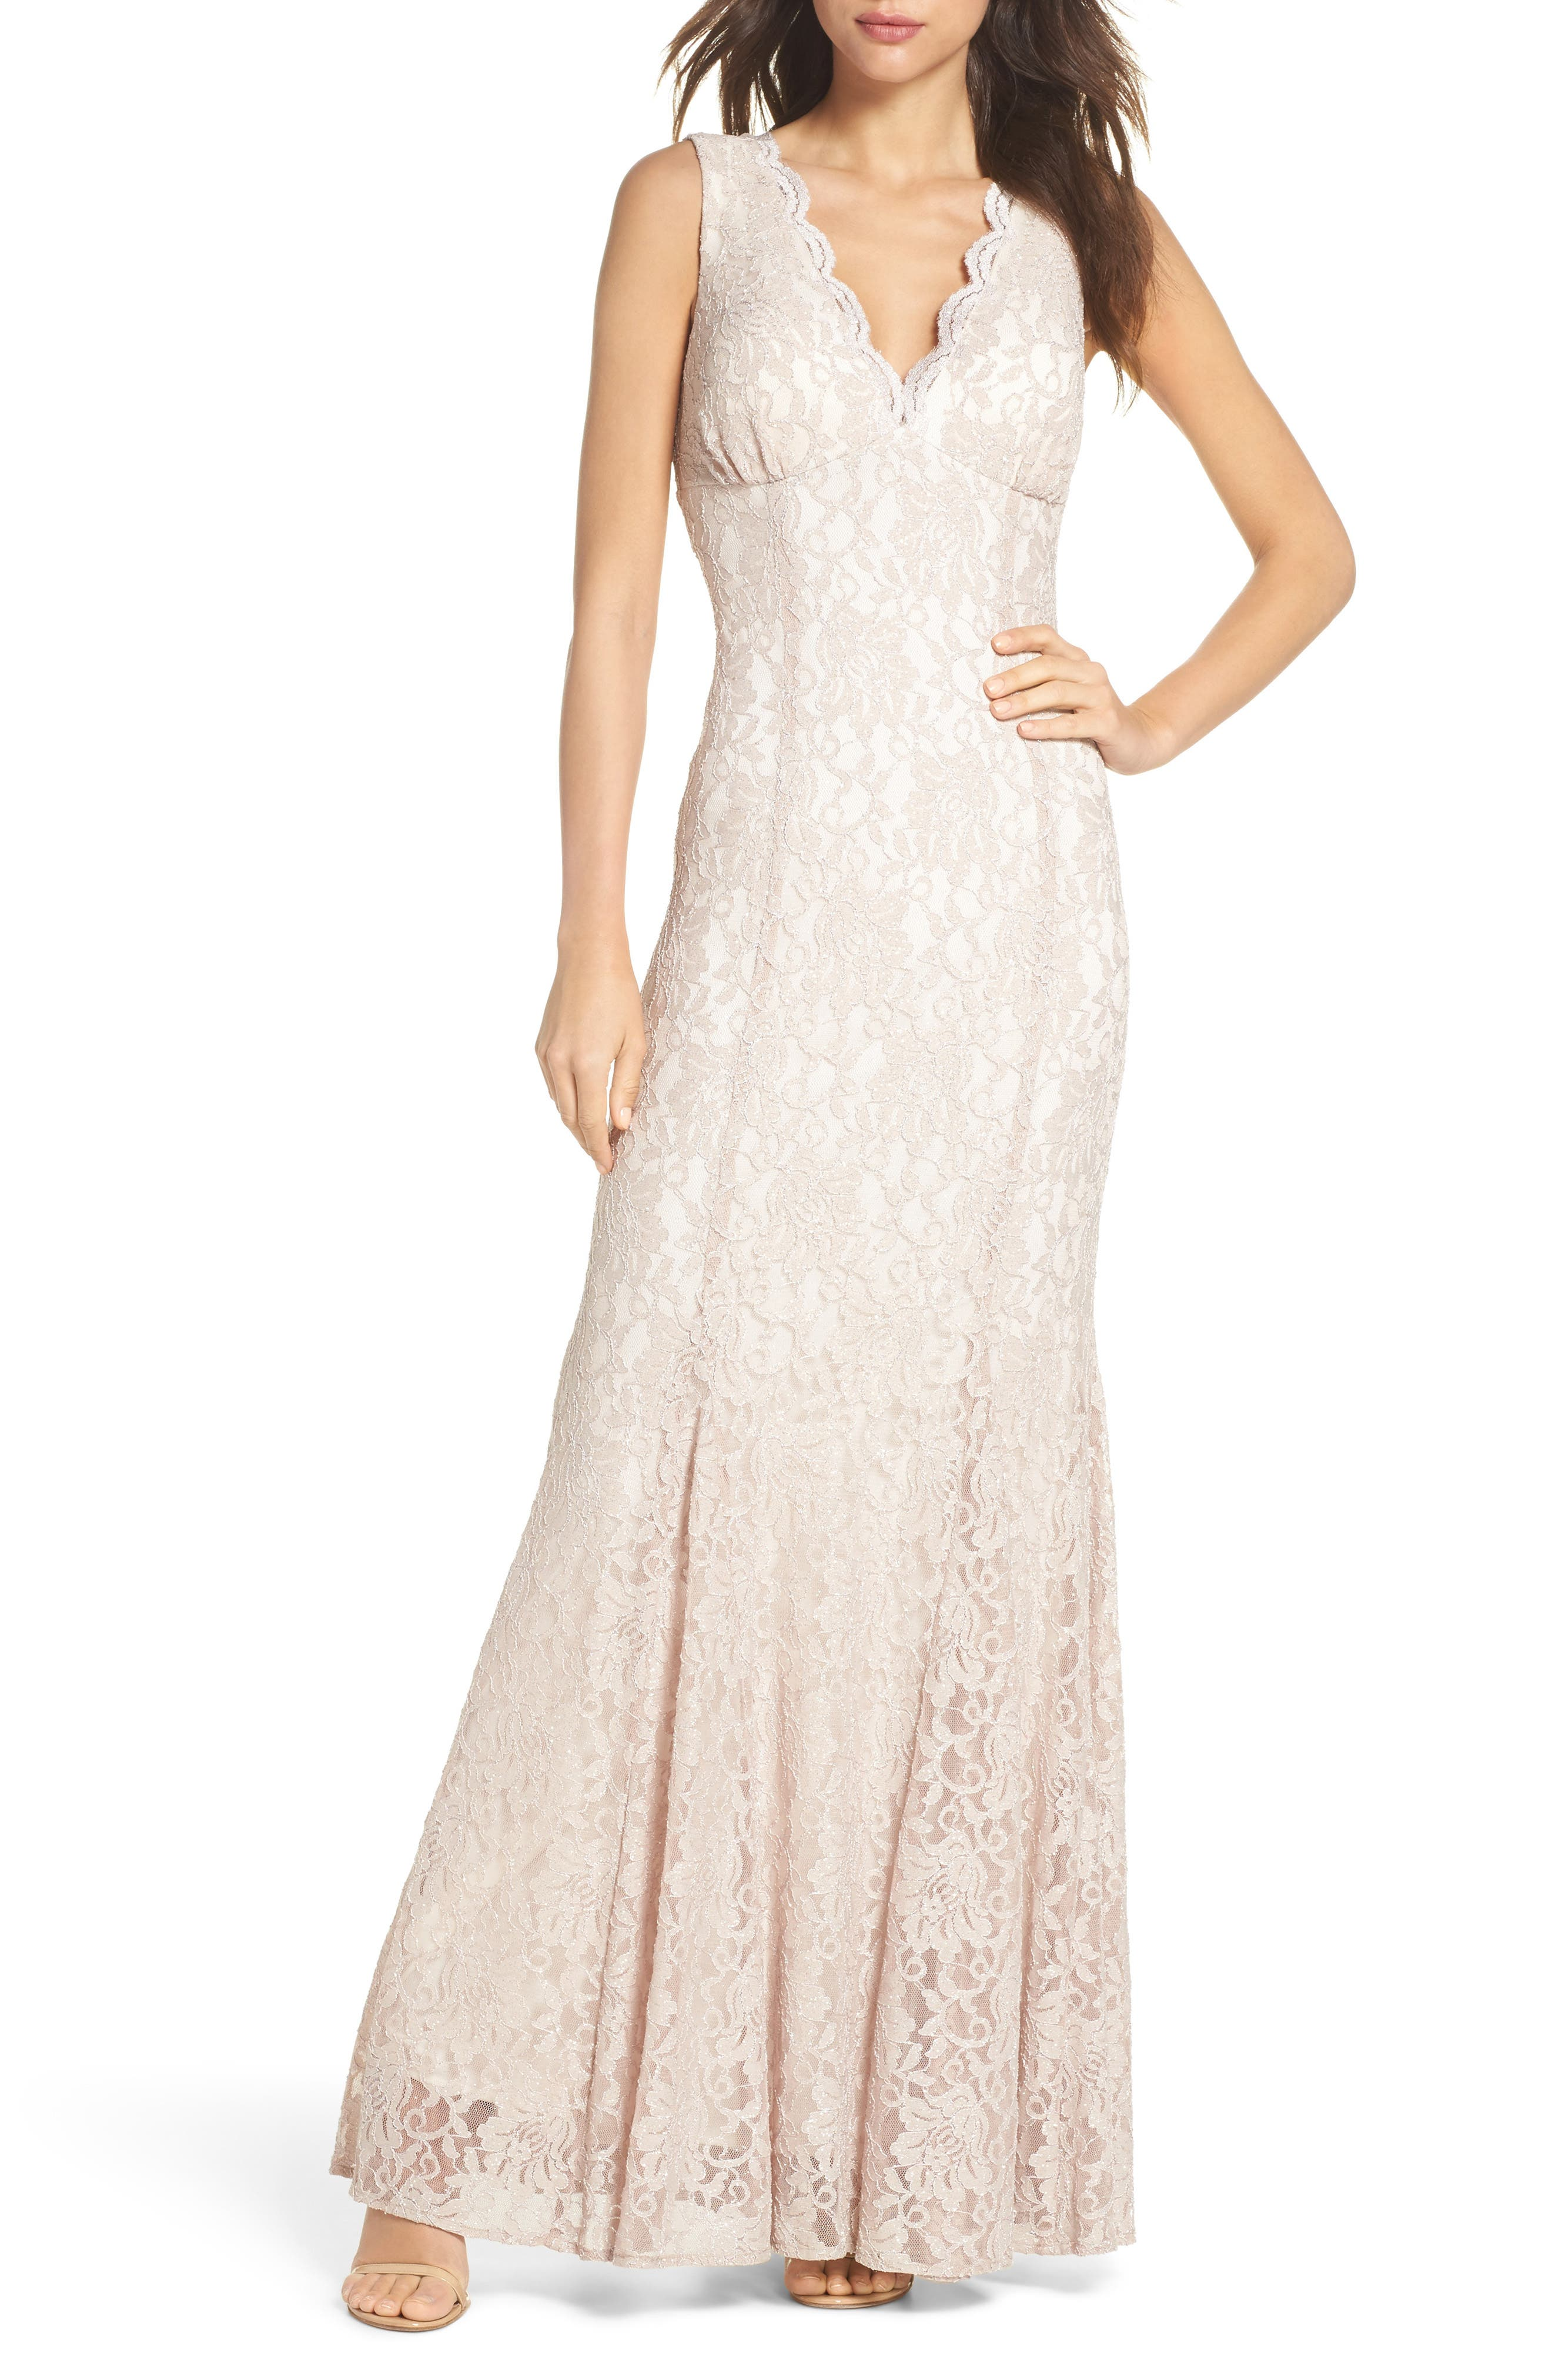 MORGAN & CO. Glitter Lace Trumpet Dress, Main, color, CHAMPAGNE / IVORY